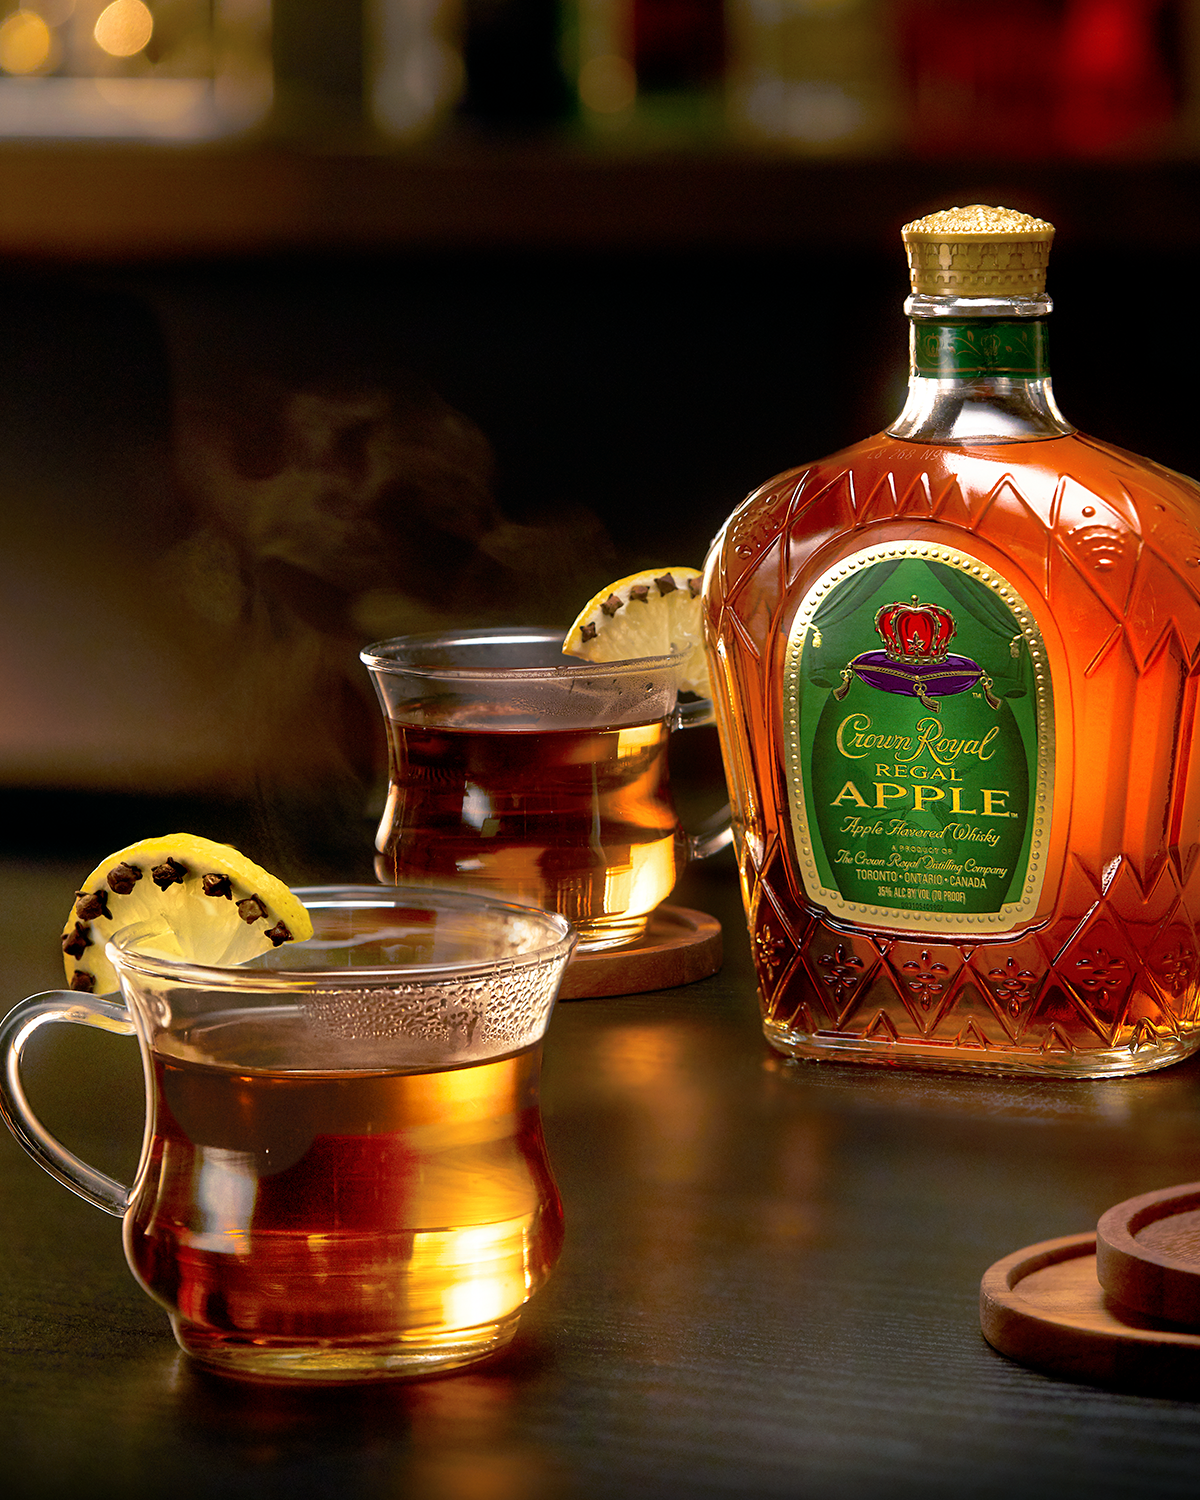 Crown Royal Apple Hot Toddy Whisky Cocktail